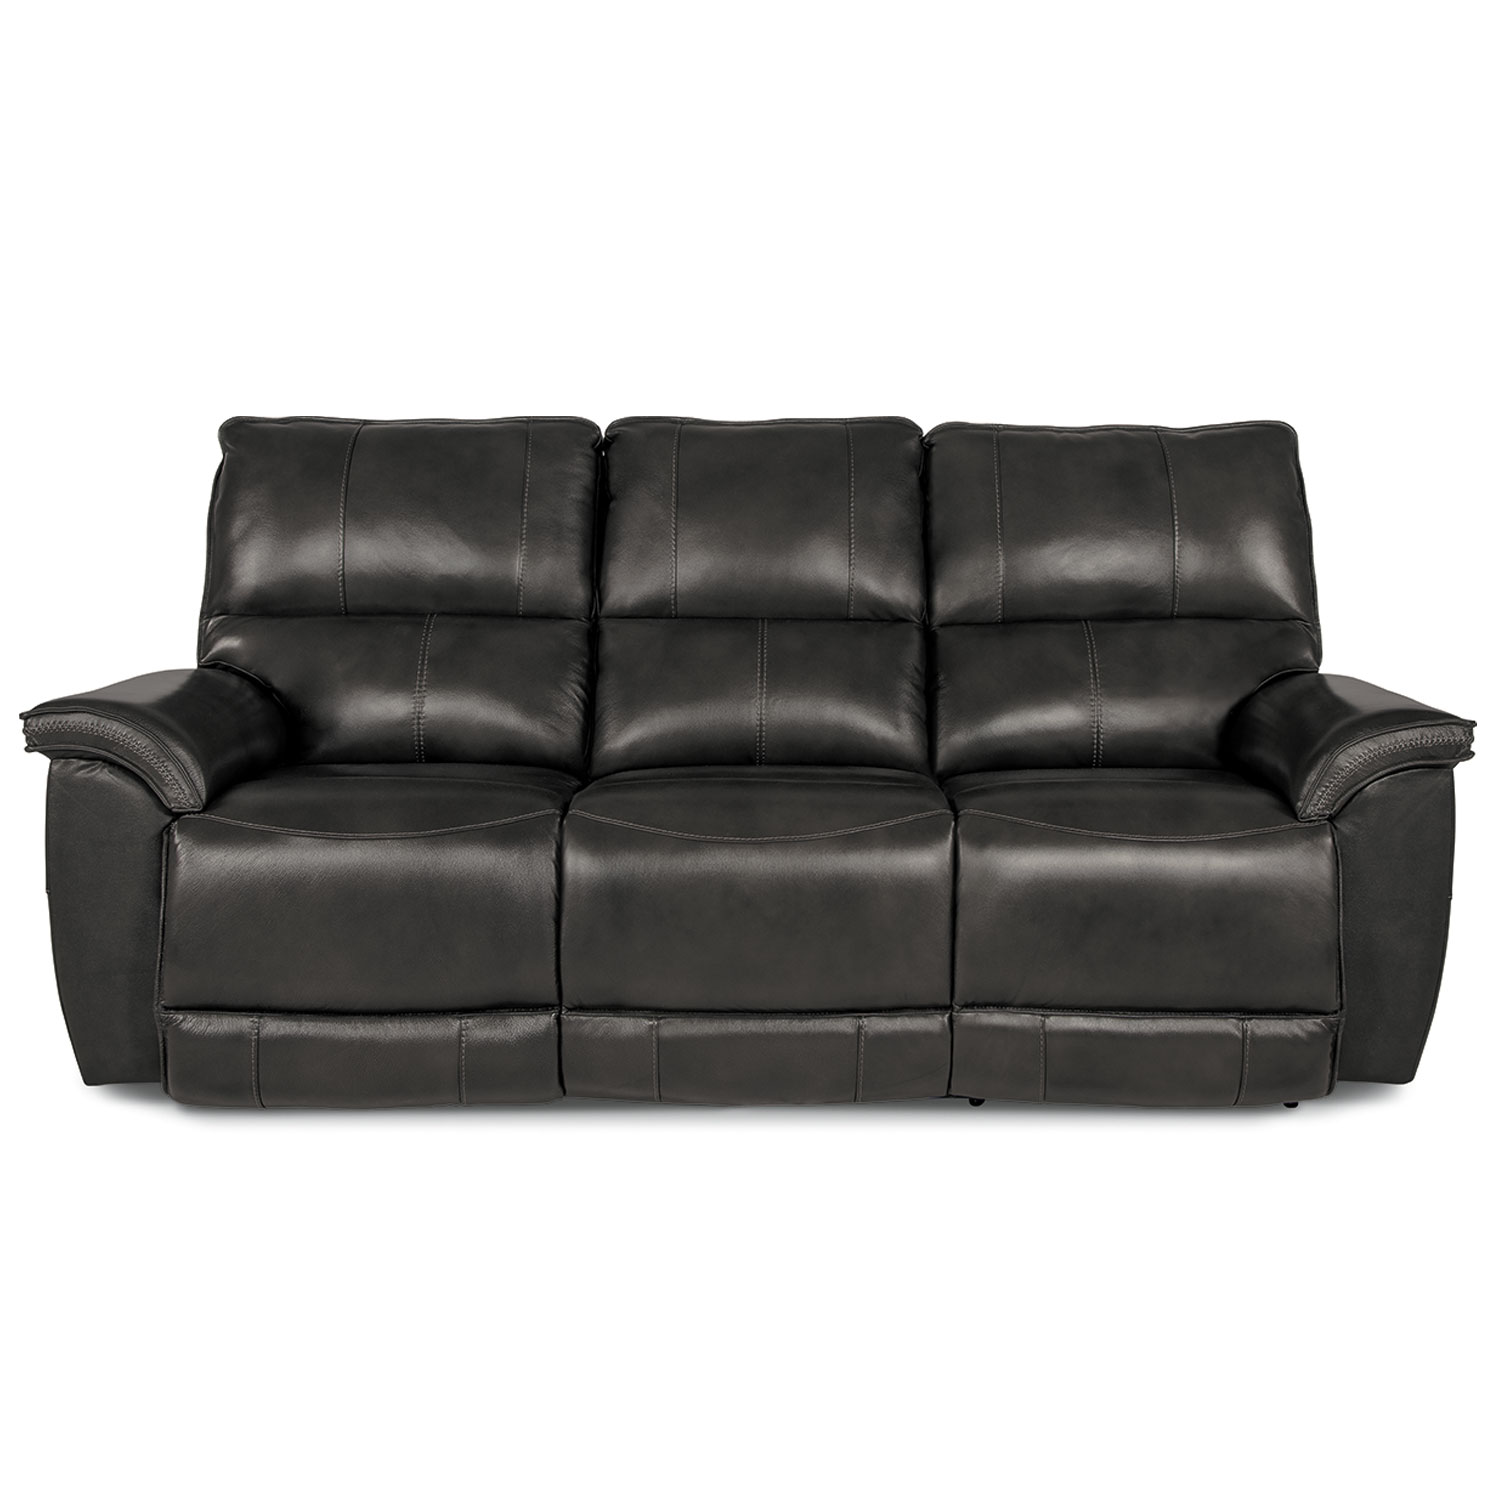 Leather Sofa La Z Boy Lazboy 440 771 Norris Leather Reclining Sofa